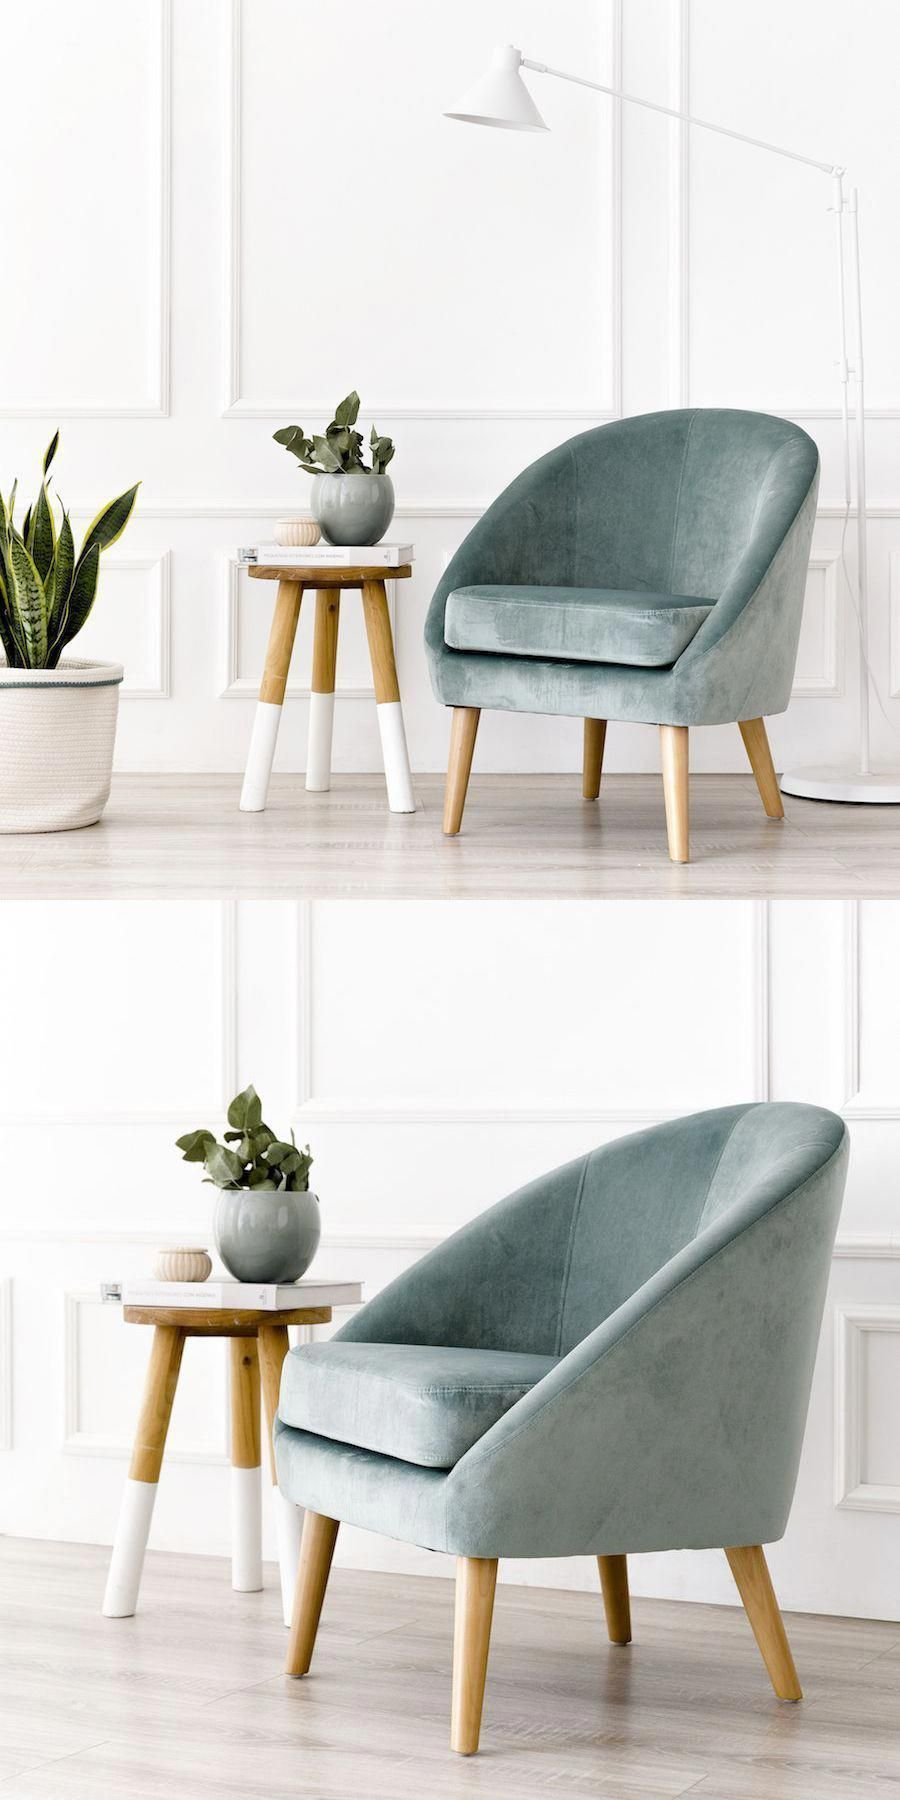 Furniture With A Soul Furniturecheapest Product Id 6161546227 Living Room Decor Furniture Small Living Room Chairs Small Living Room Layout